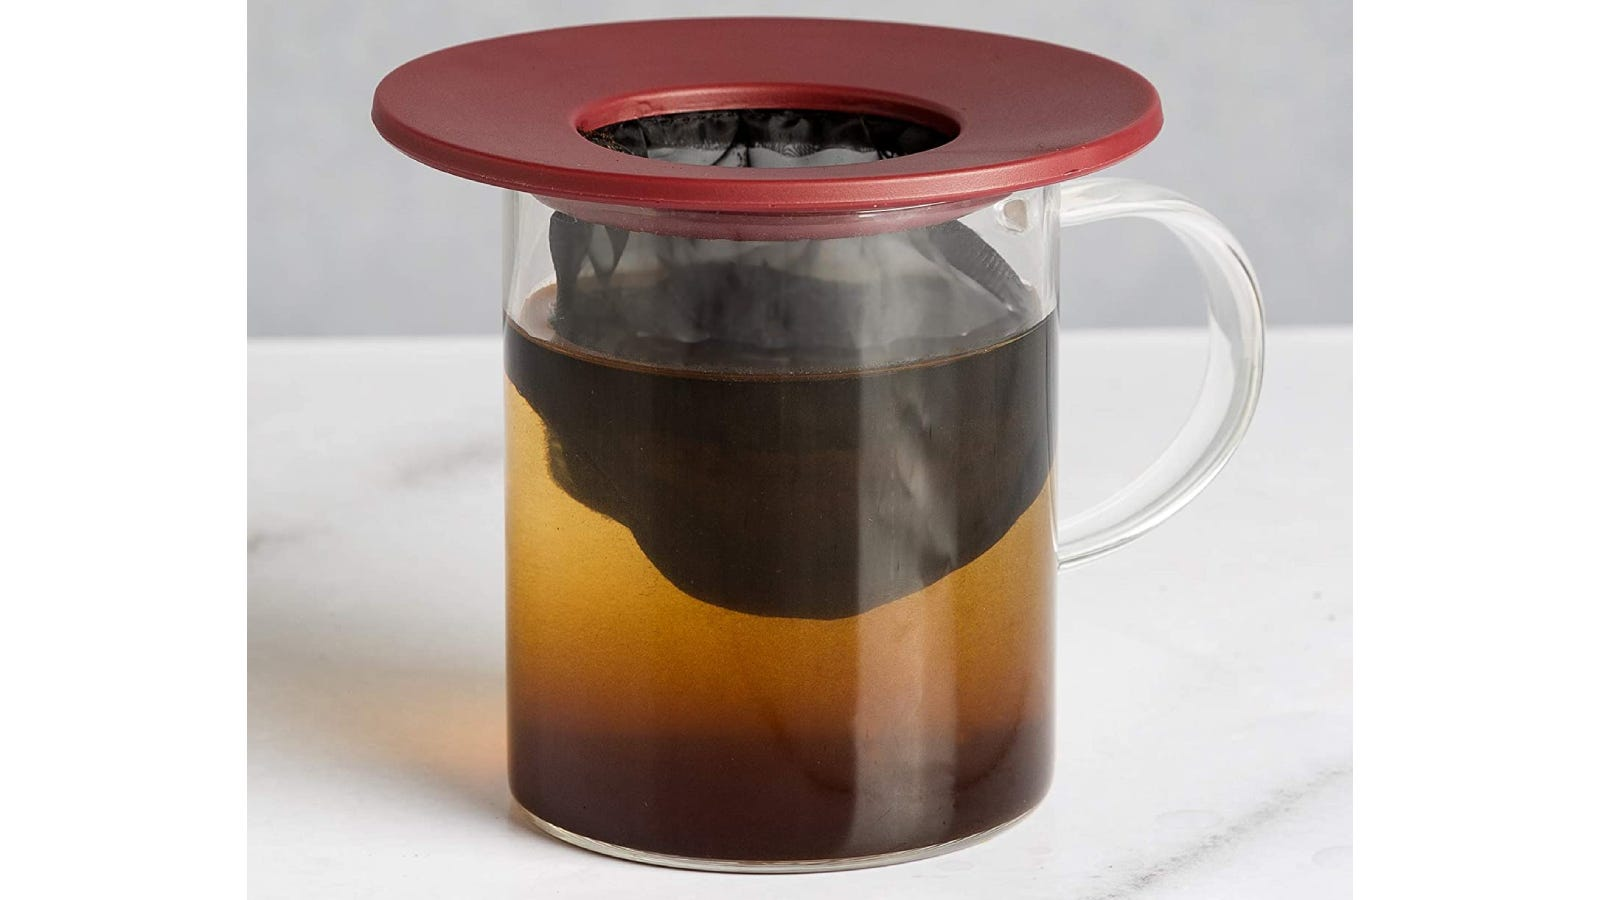 Plastic portable pour-over coffee device with an attached mesh filter placed atop a glass mug filled with coffee.